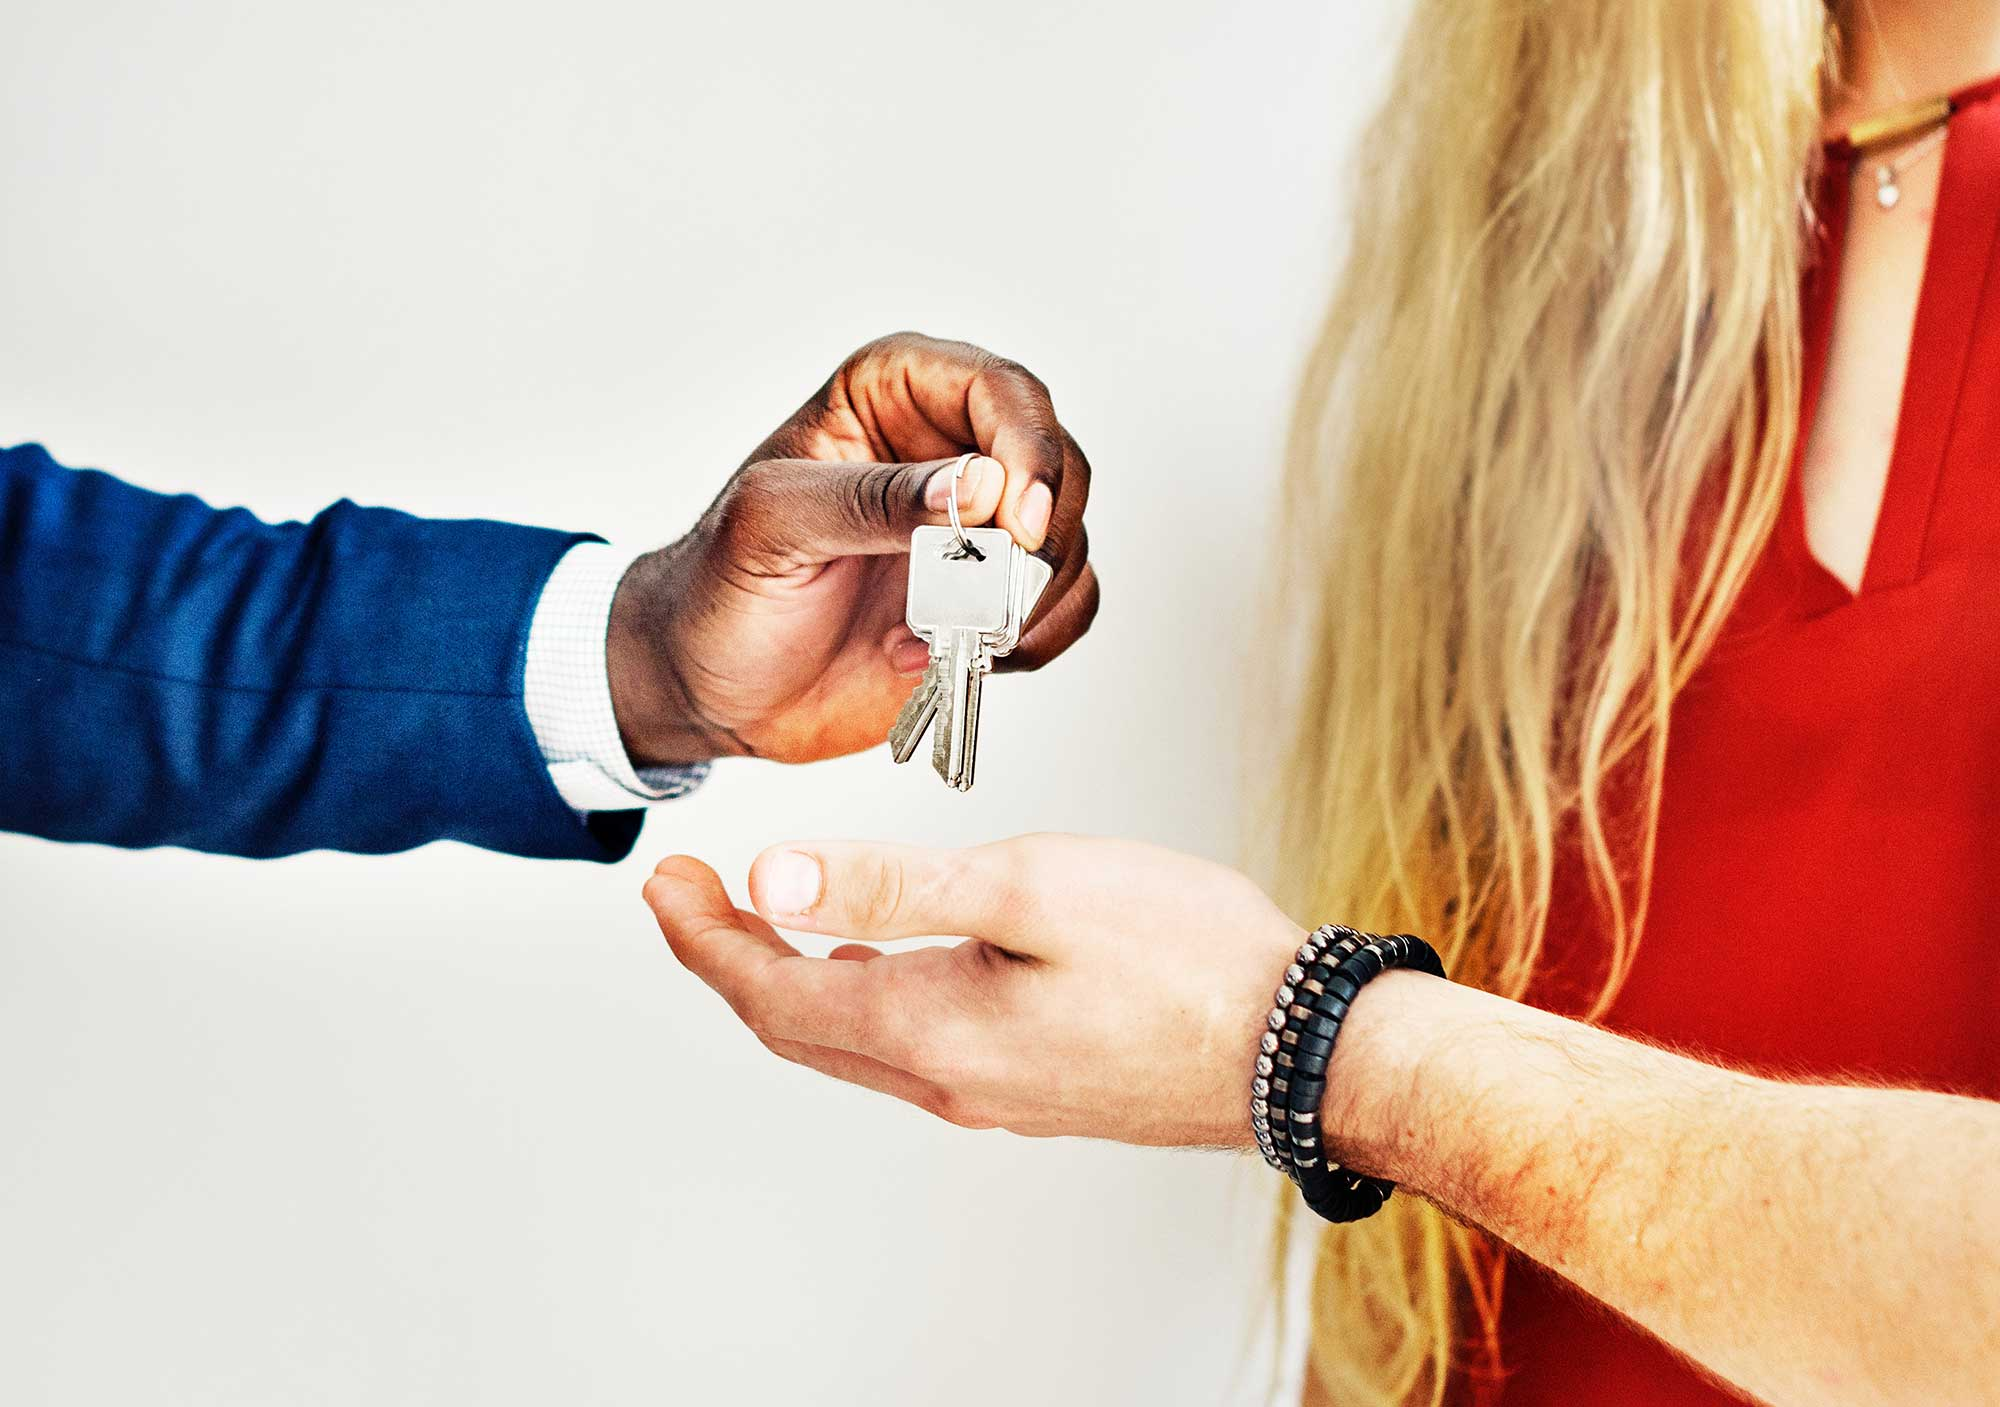 https://www.pexels.com/photo/person-handing-keys-1368687/